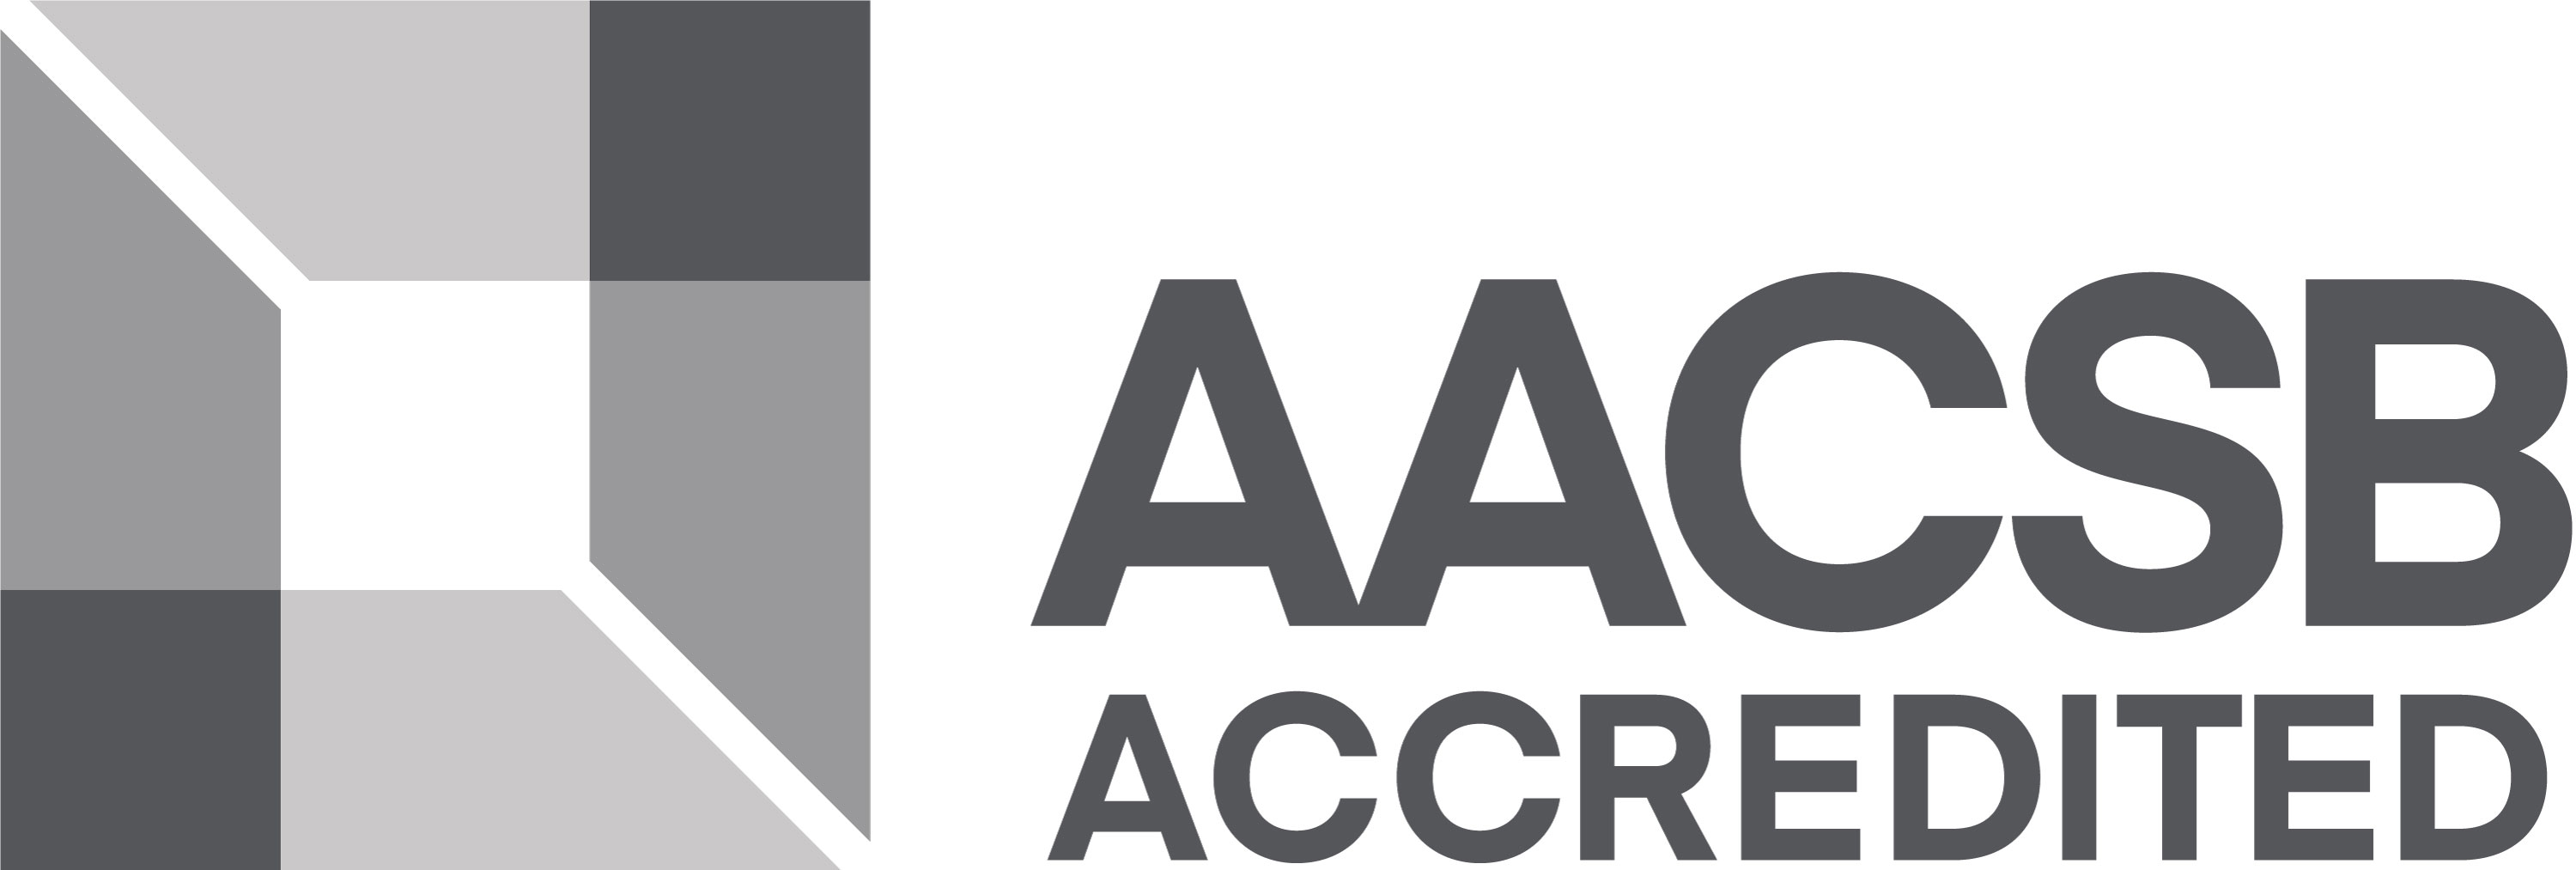 AACSB-logo-accredited-gray-RGB